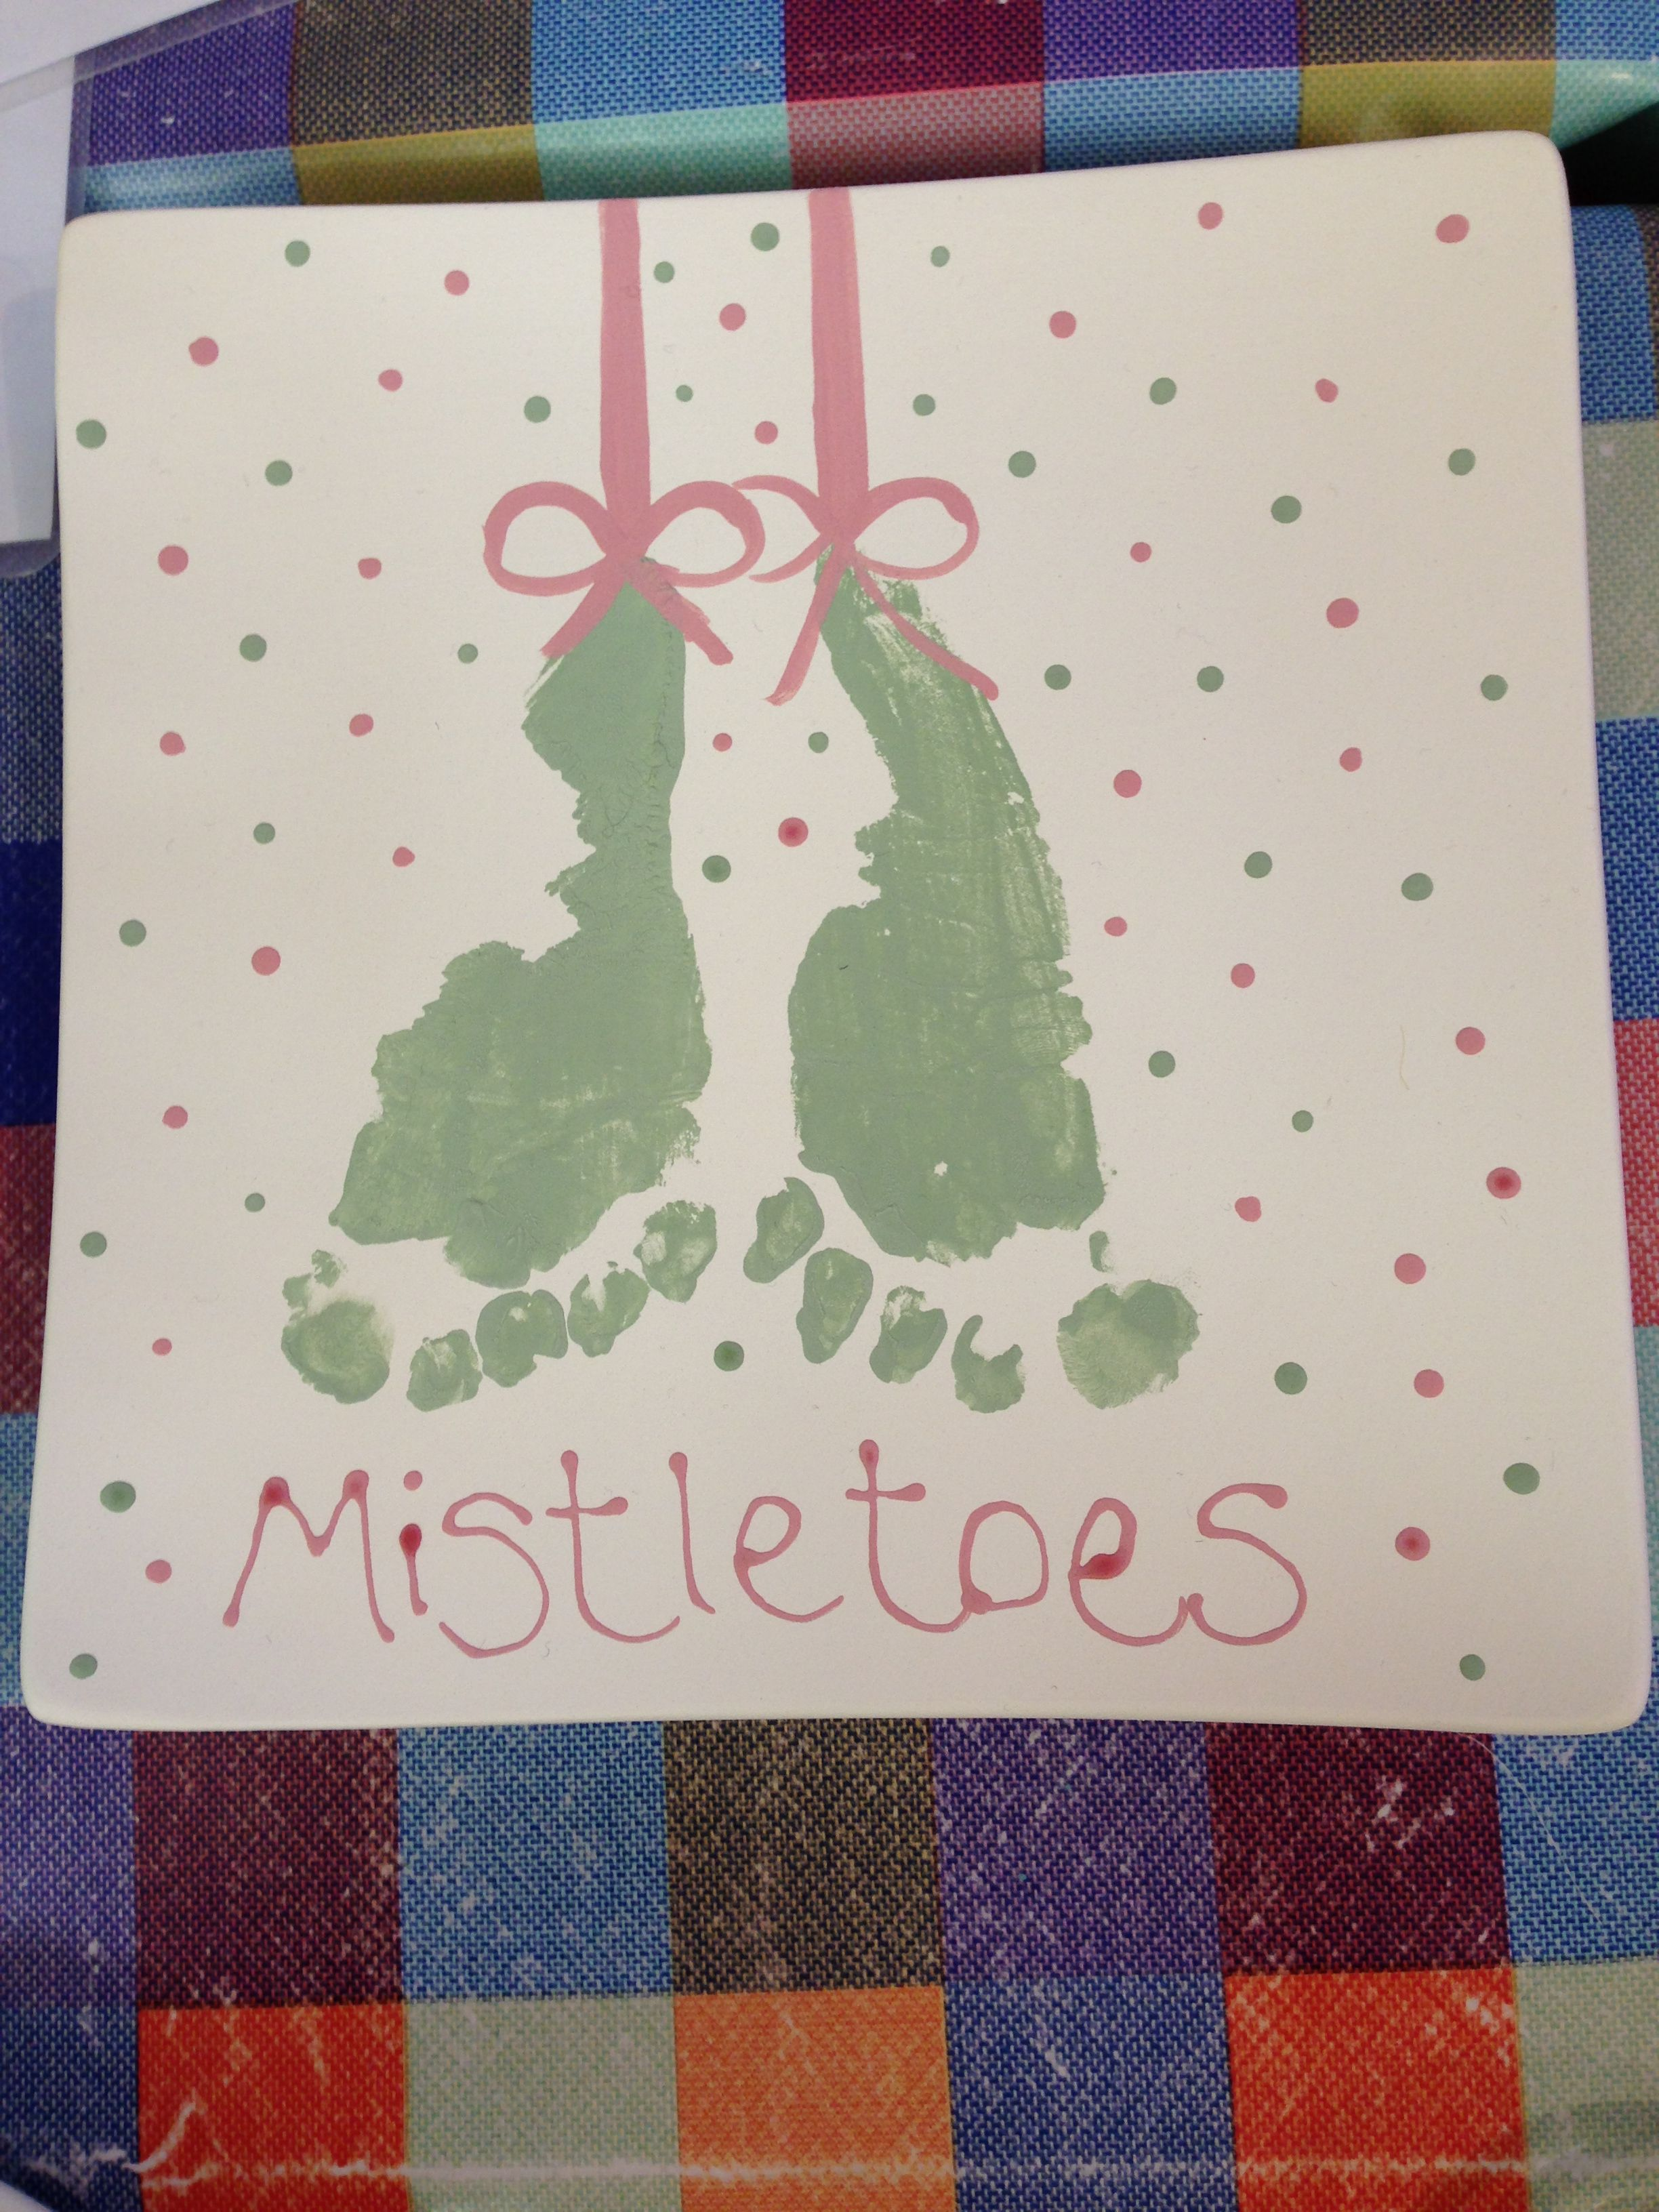 Mistletoes footprint picture #mistletoesfootprintcraft